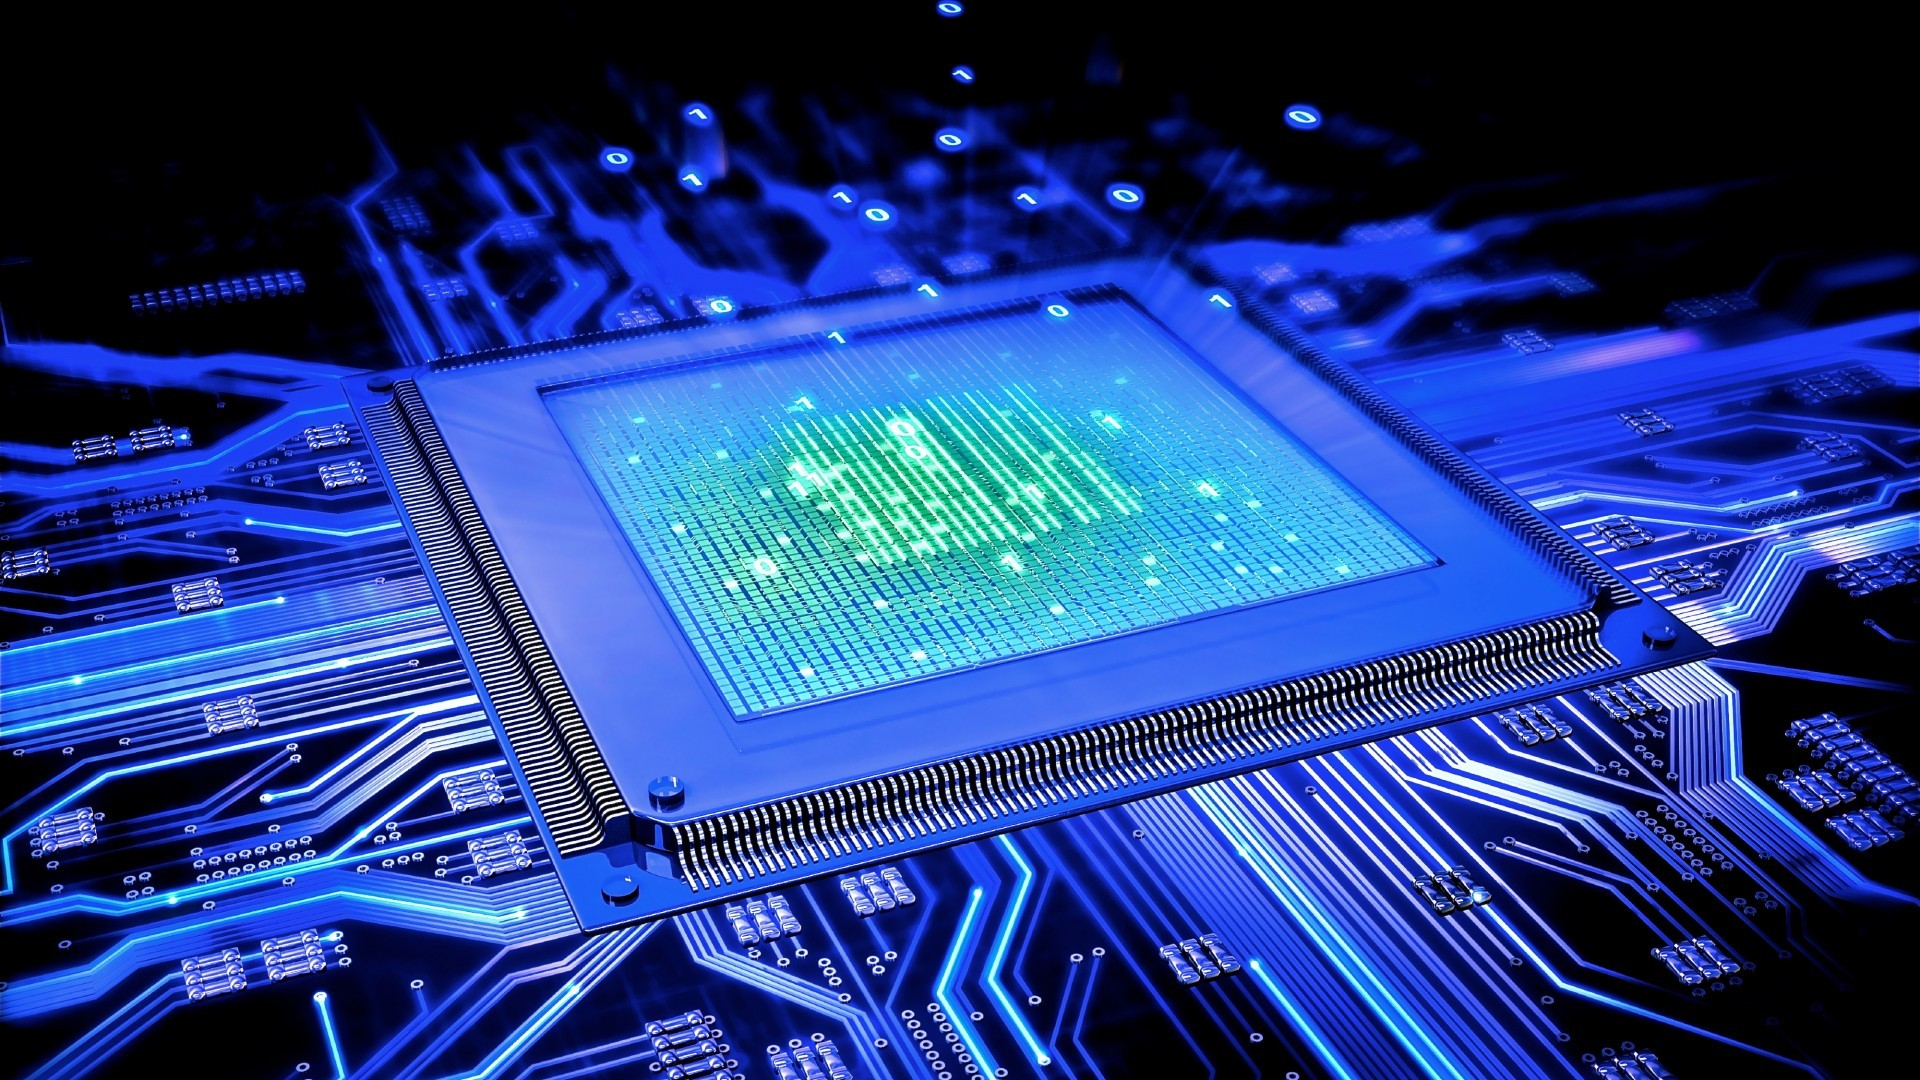 hardware-cpu-high-tech-blue-1920x1080